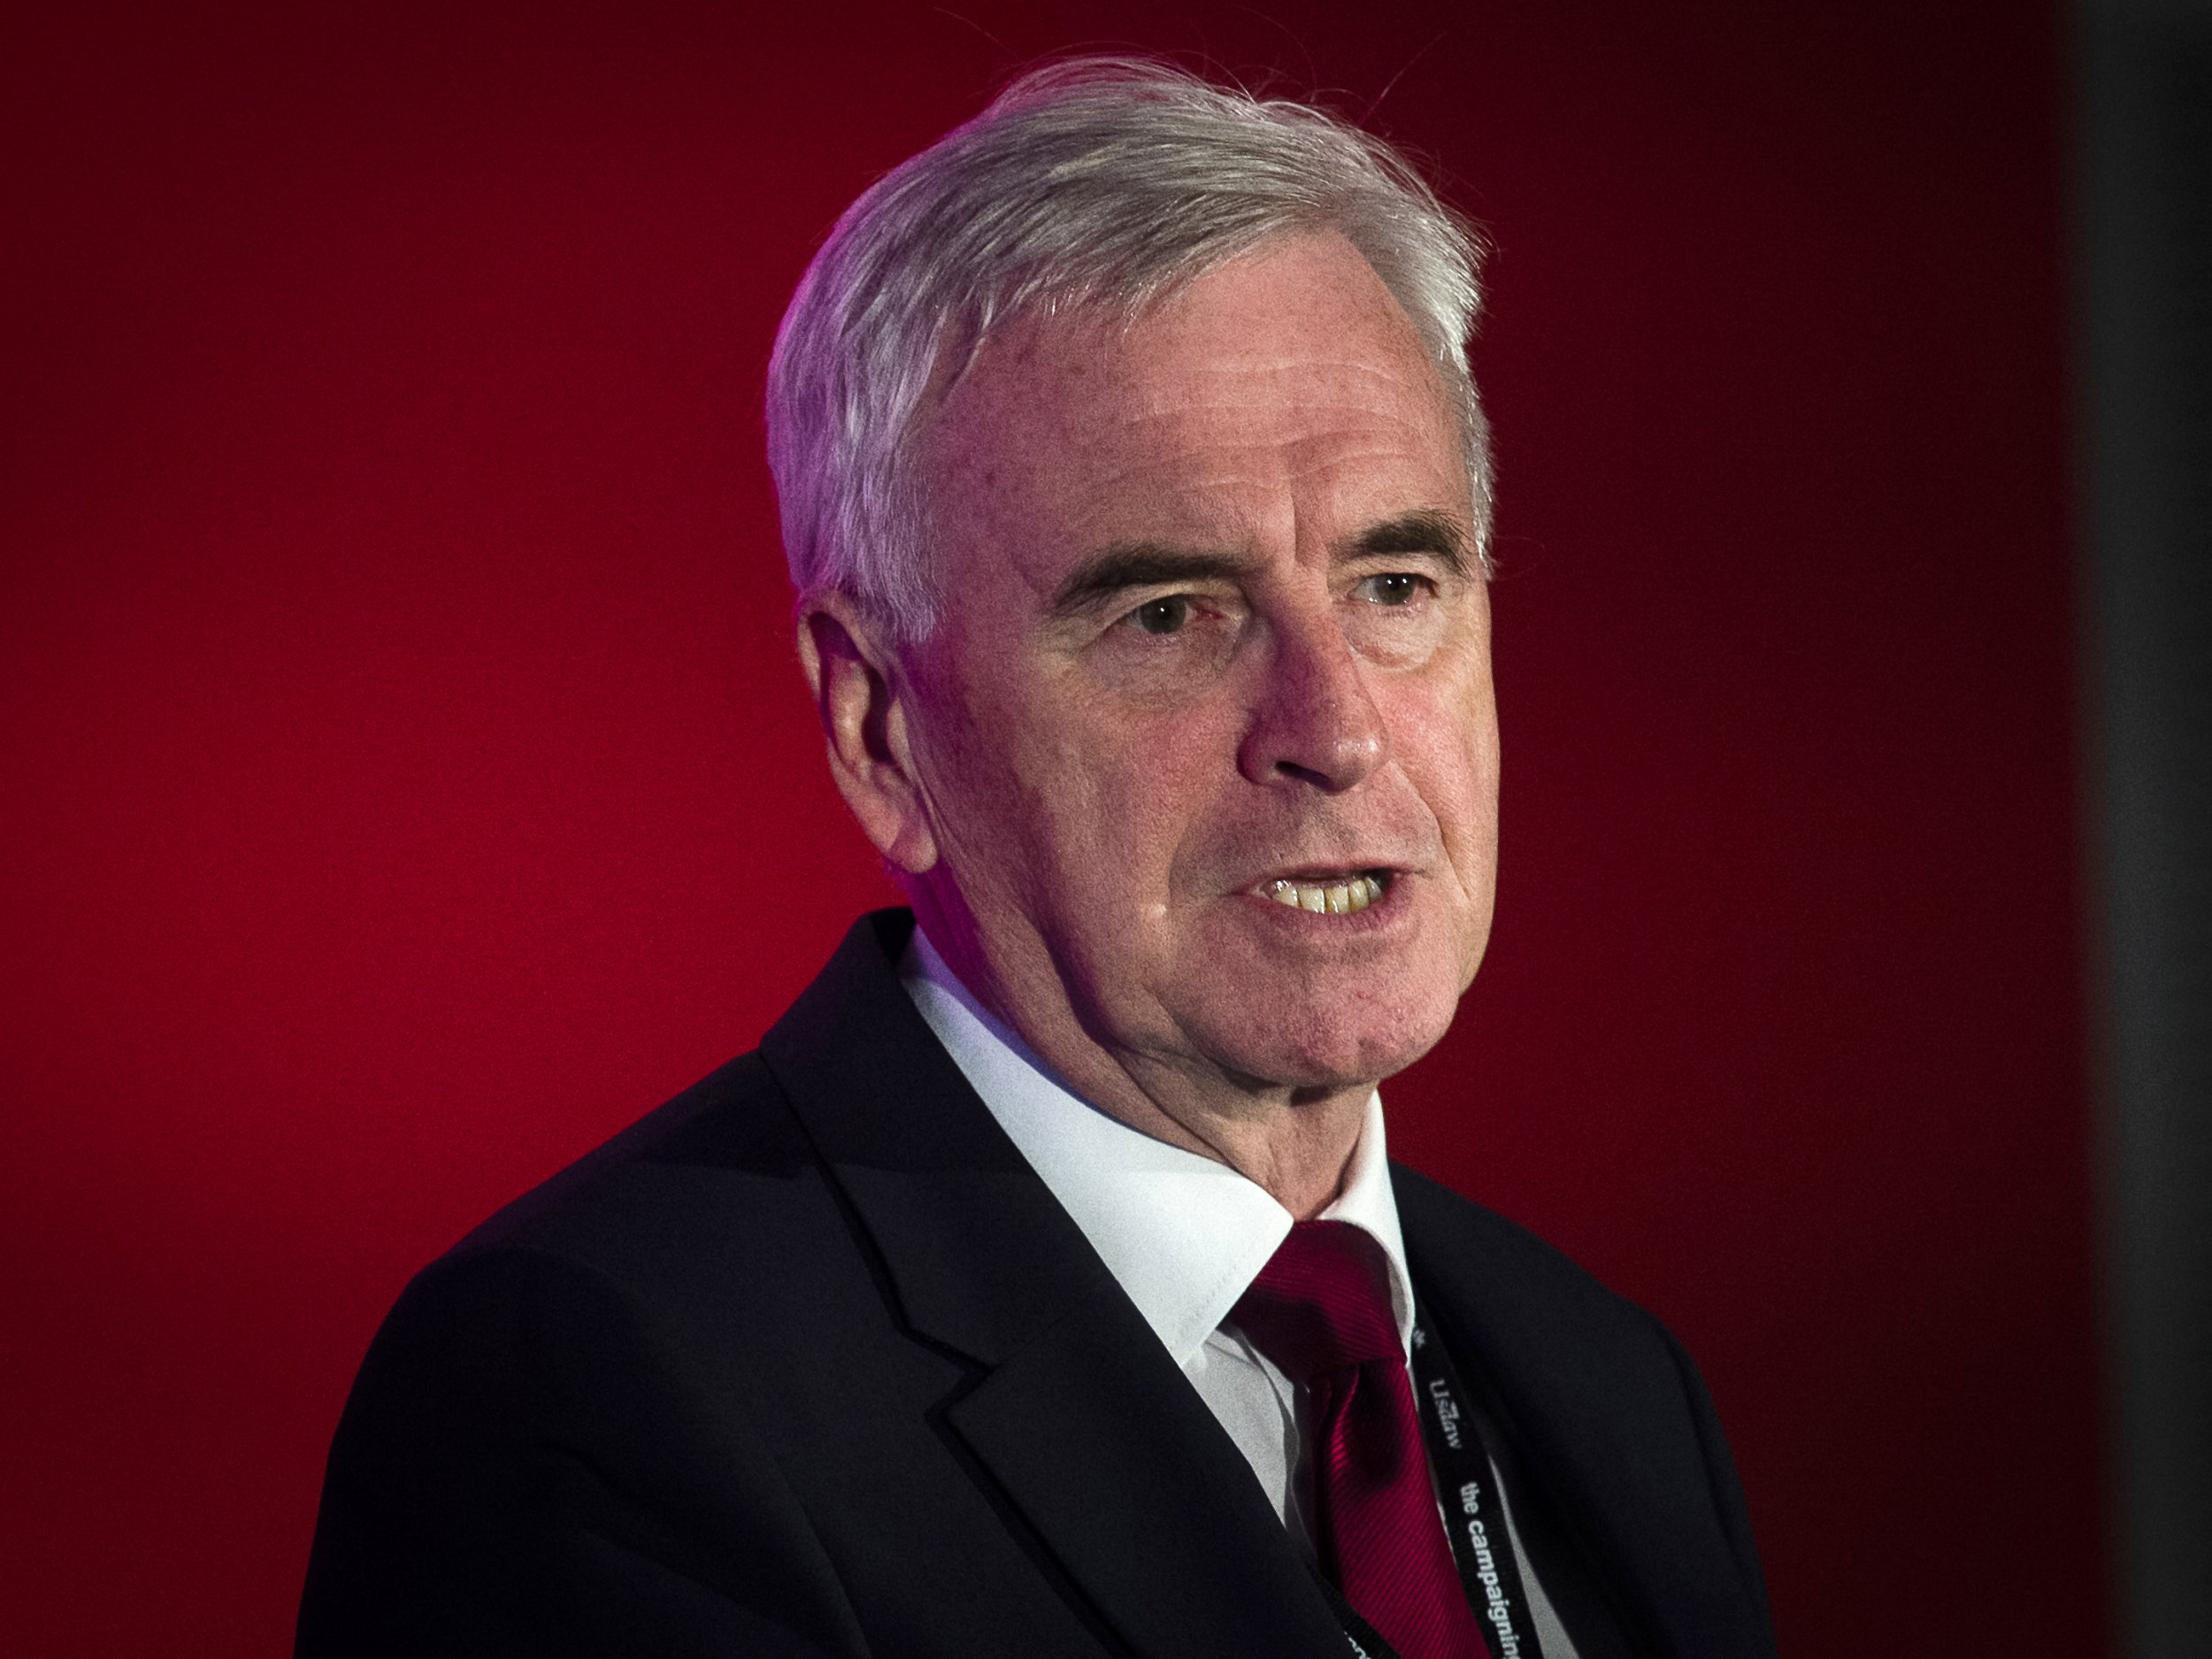 epa07041930 Shadow Chancellor John McDonnell attends a fringe event at the Labour Party Conference in Liverpool, Britain, 23 September 2018. The annual Labour Party Conference which will run from 23 September until Wednesday 26 September. EPA/WILL OLIVER